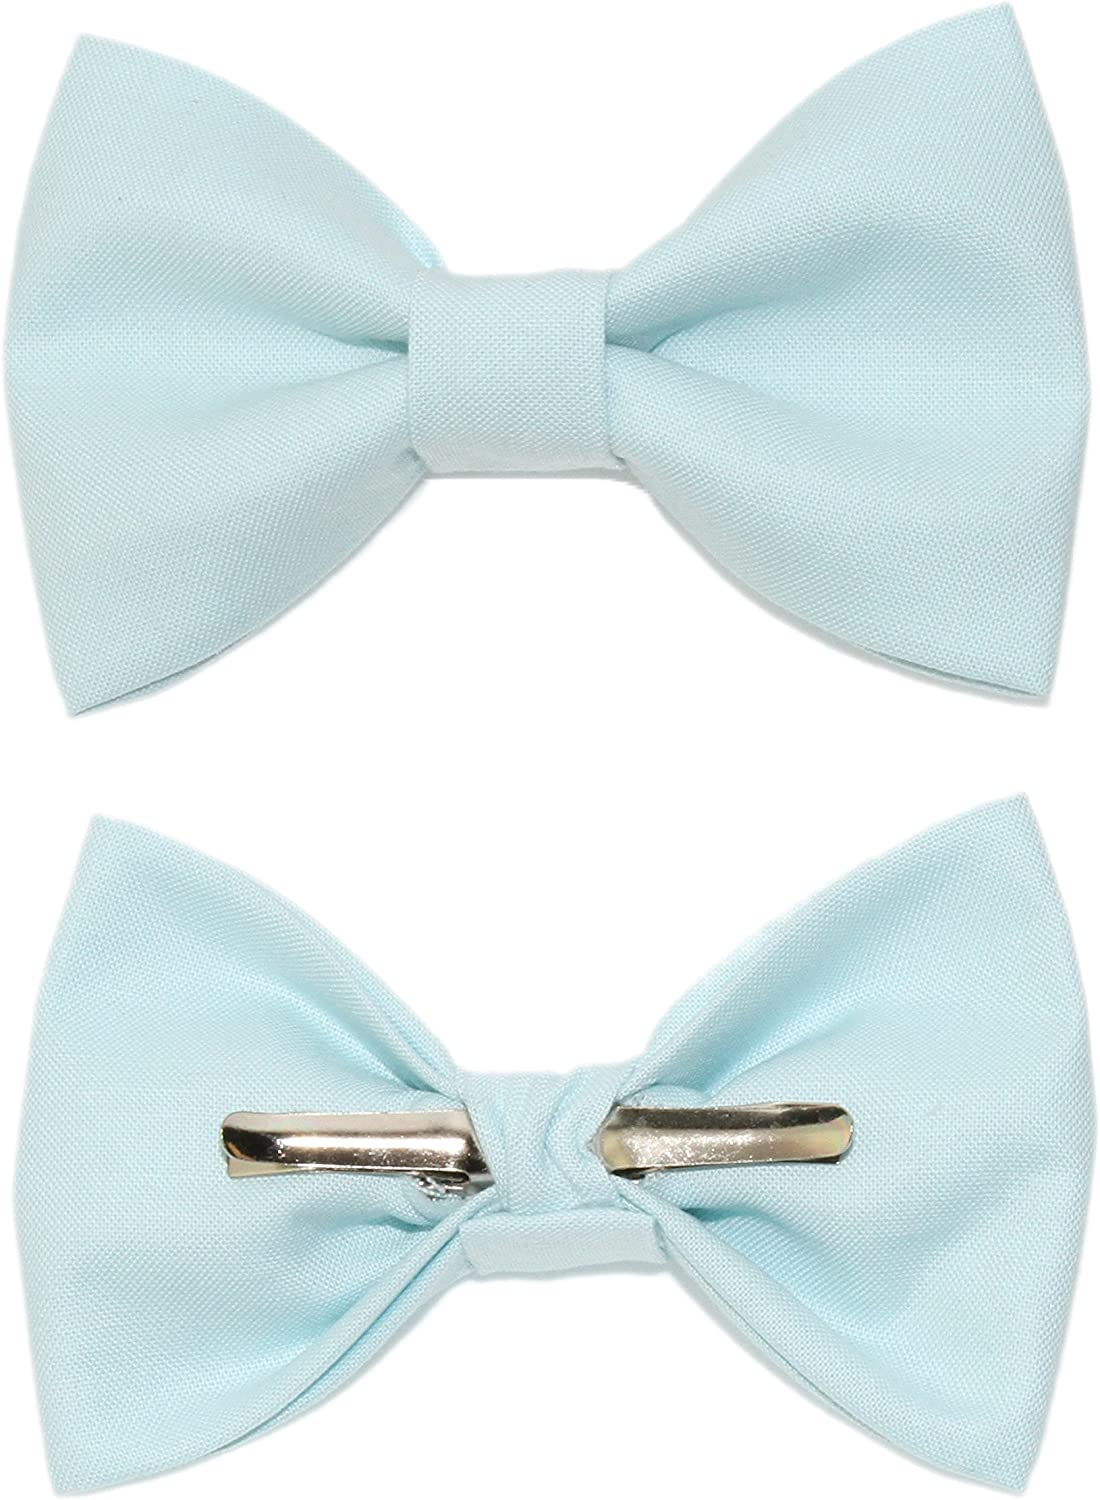 Boys Baby Blue Clip On Cotton Bow Tie Bowtie by amy2004marie